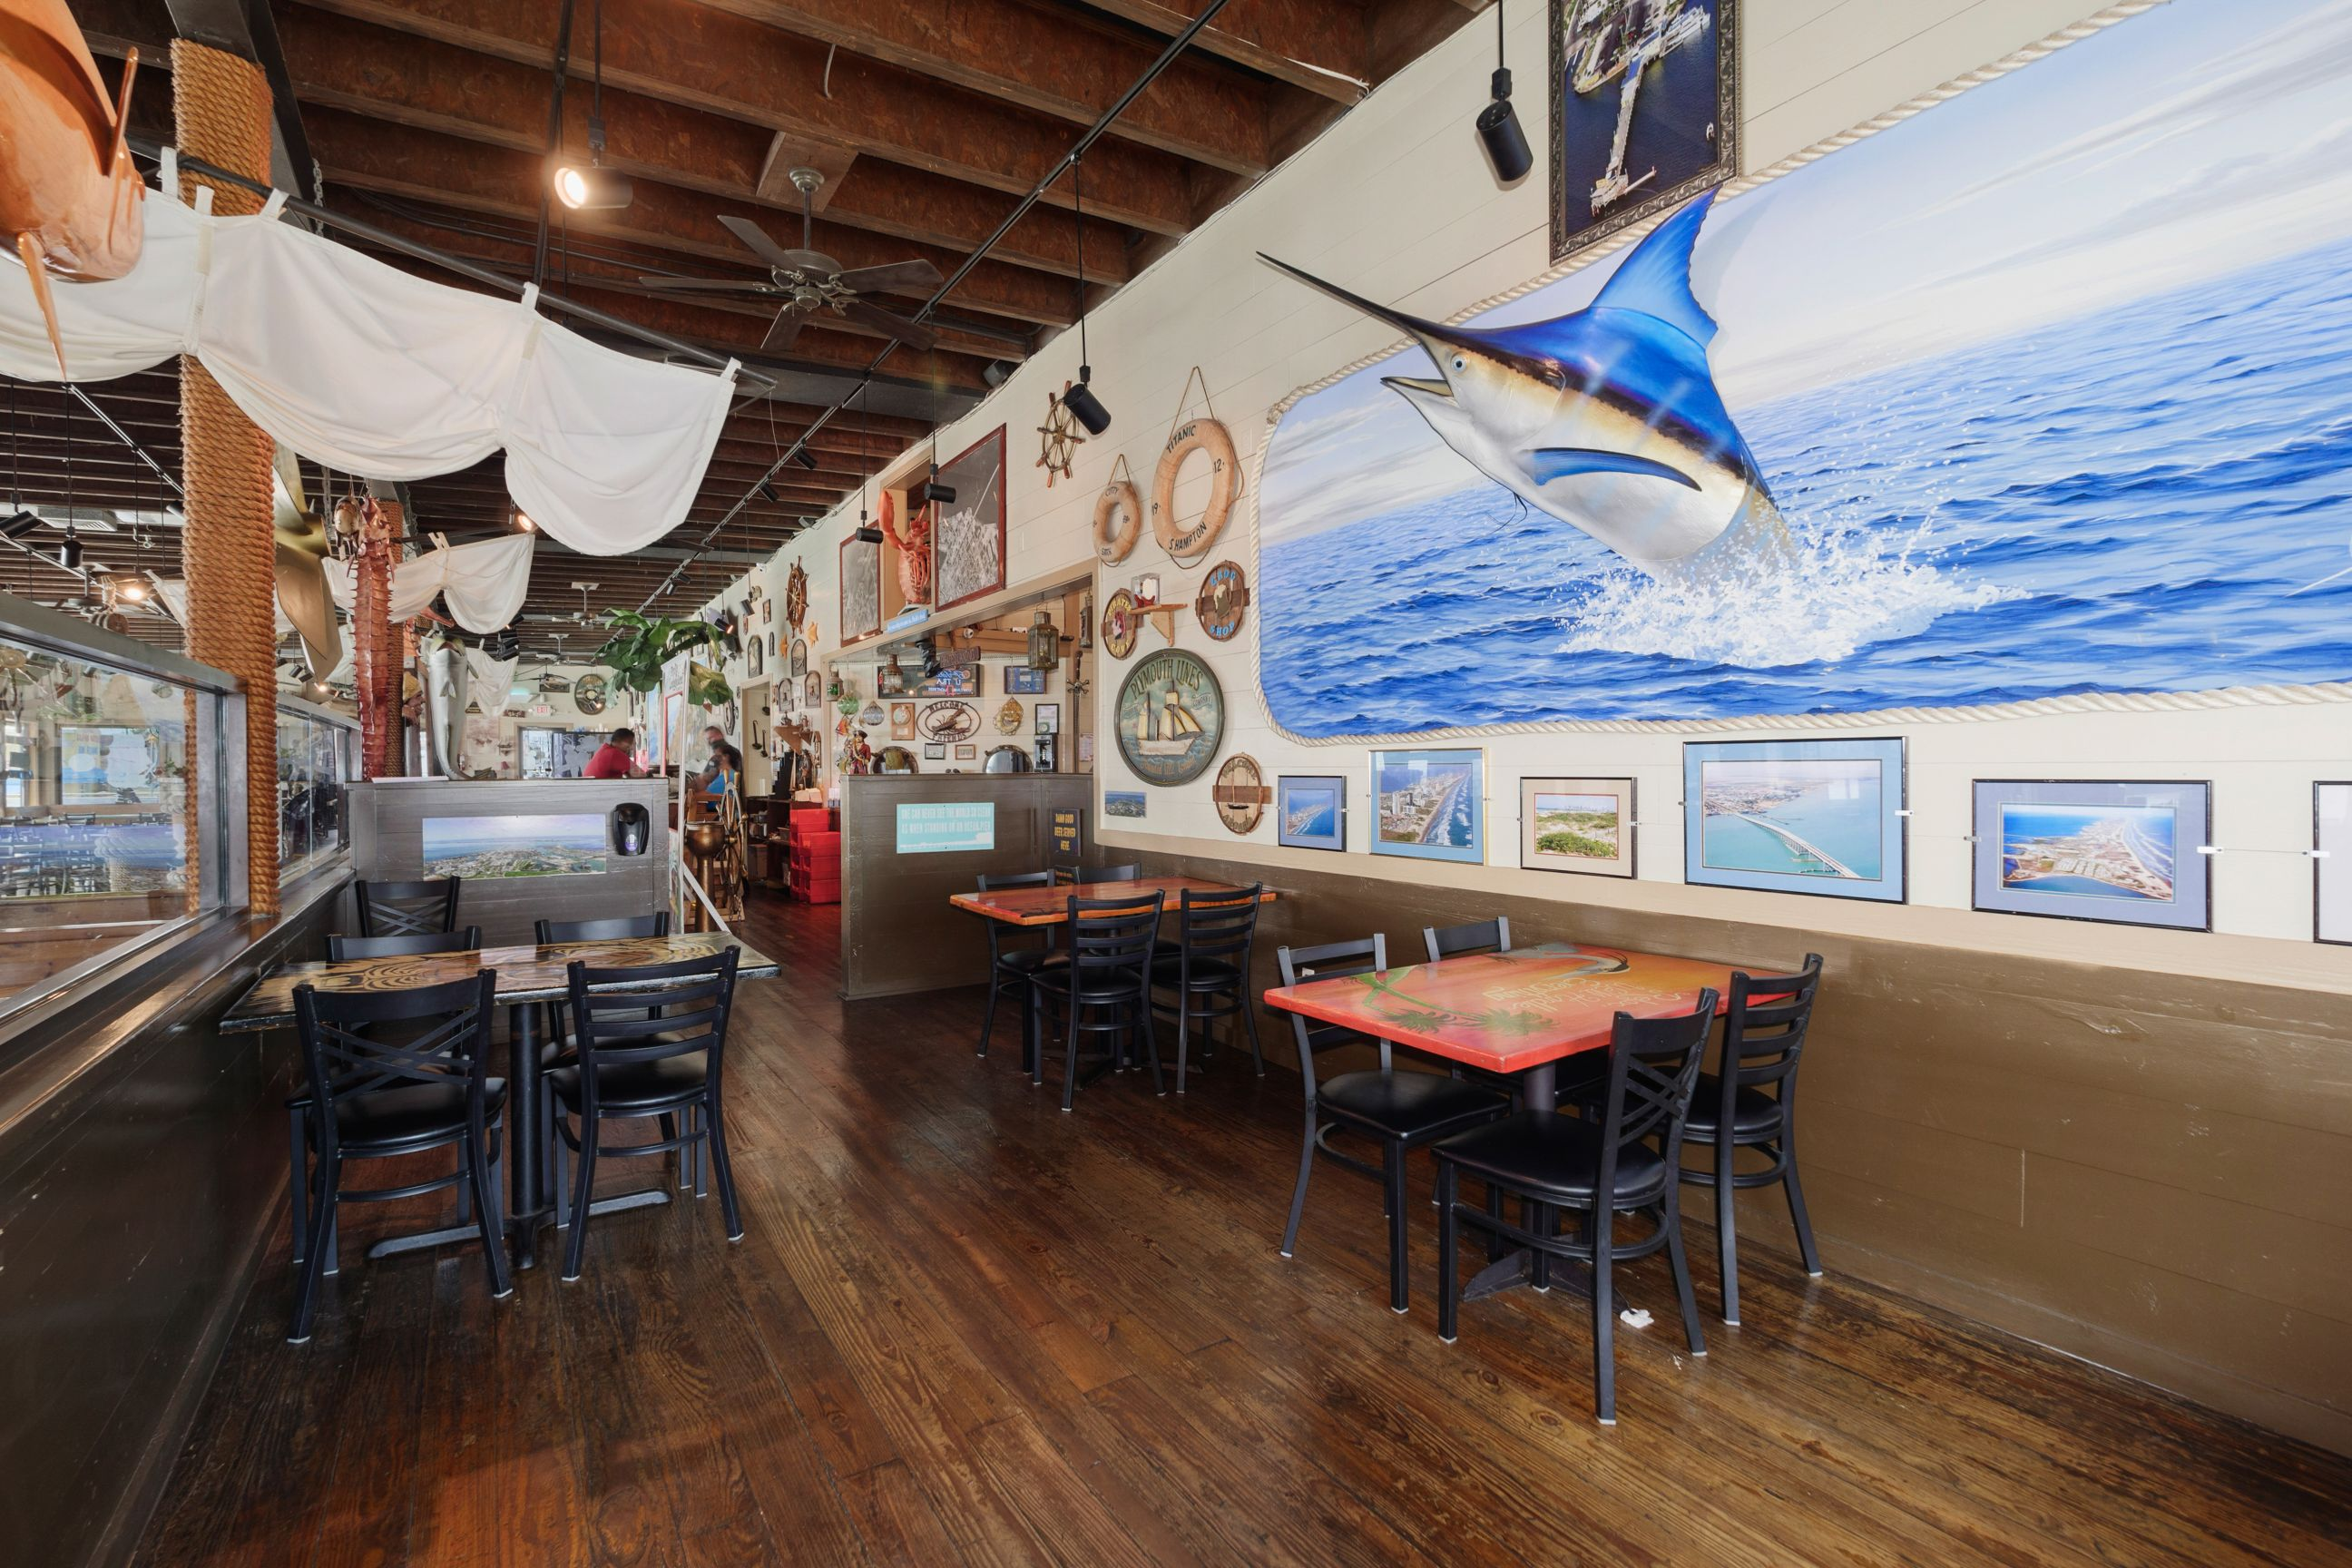 interior seating at restaurant with mural of a Marlin